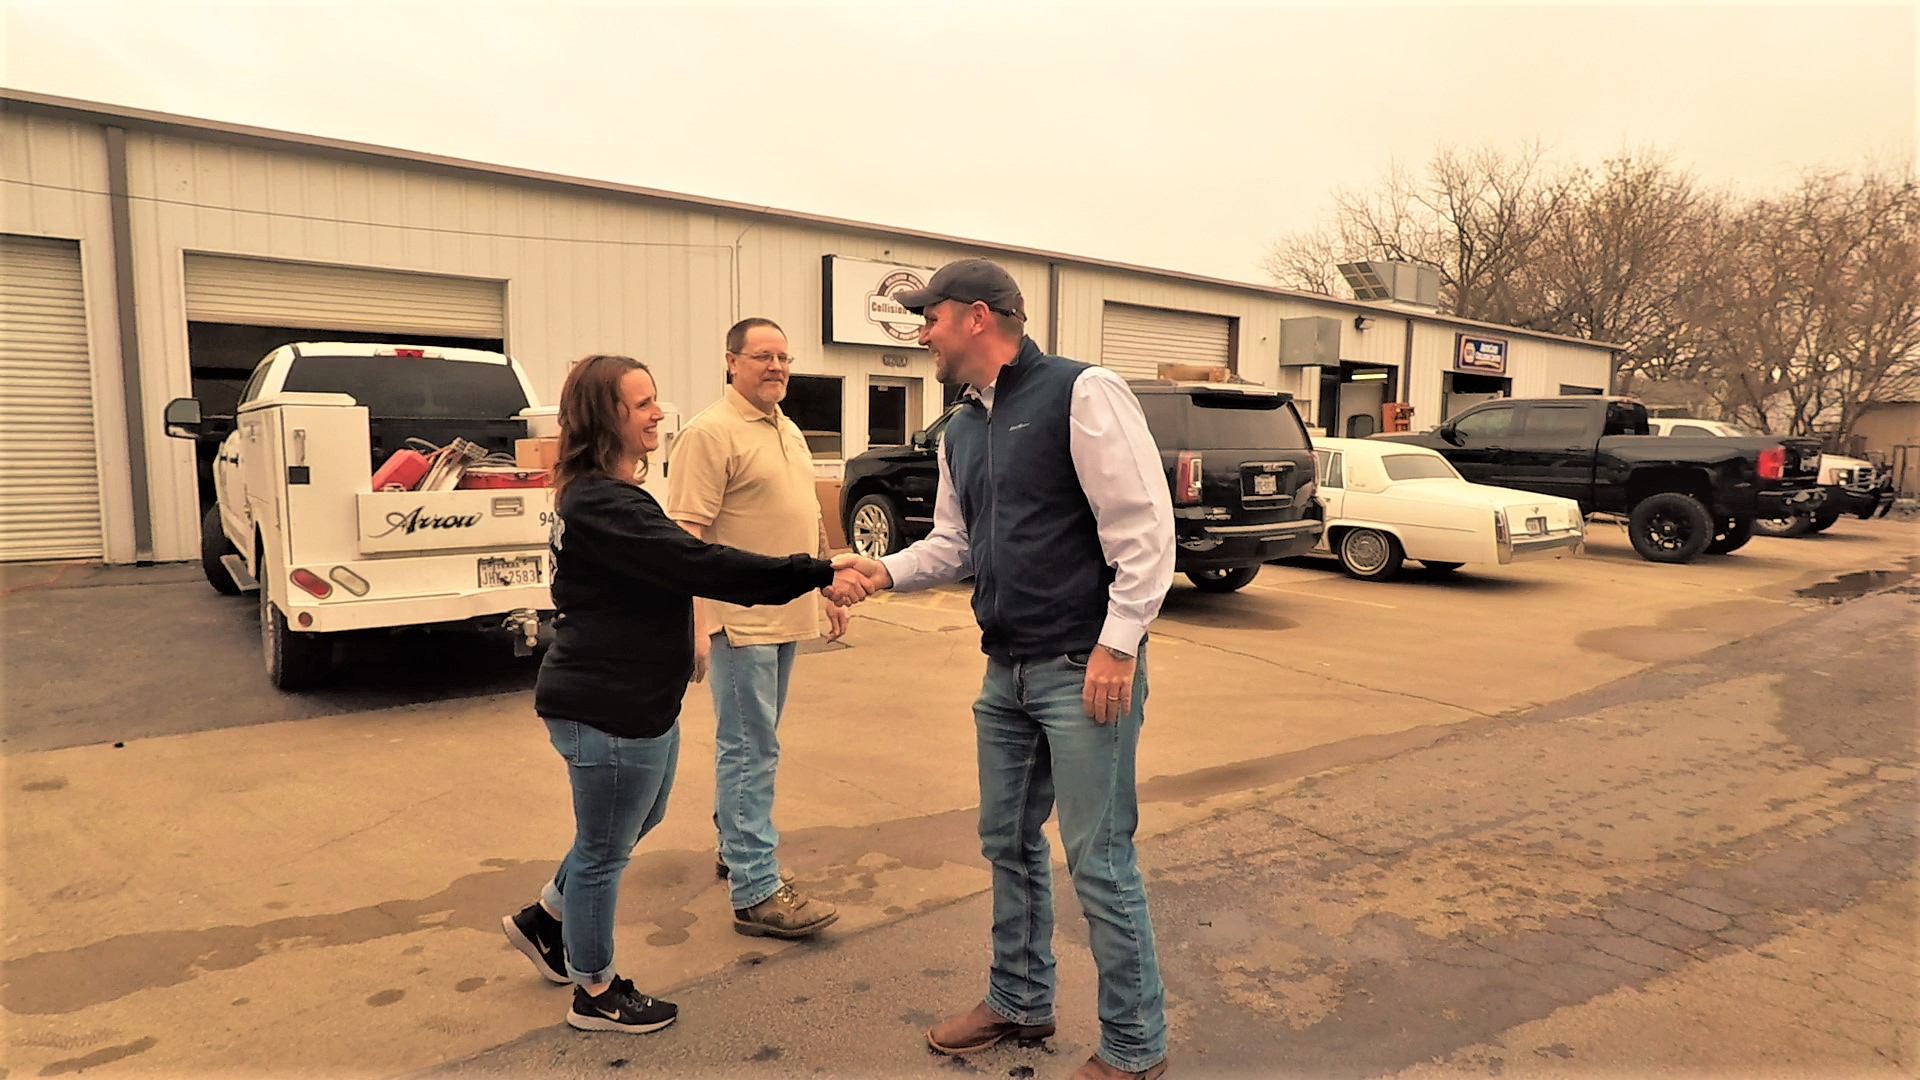 Brad Jones of Trophy Insurance shaking hands with some of his business insurance customers at Lee Collision in Mineral Wells, Texas.